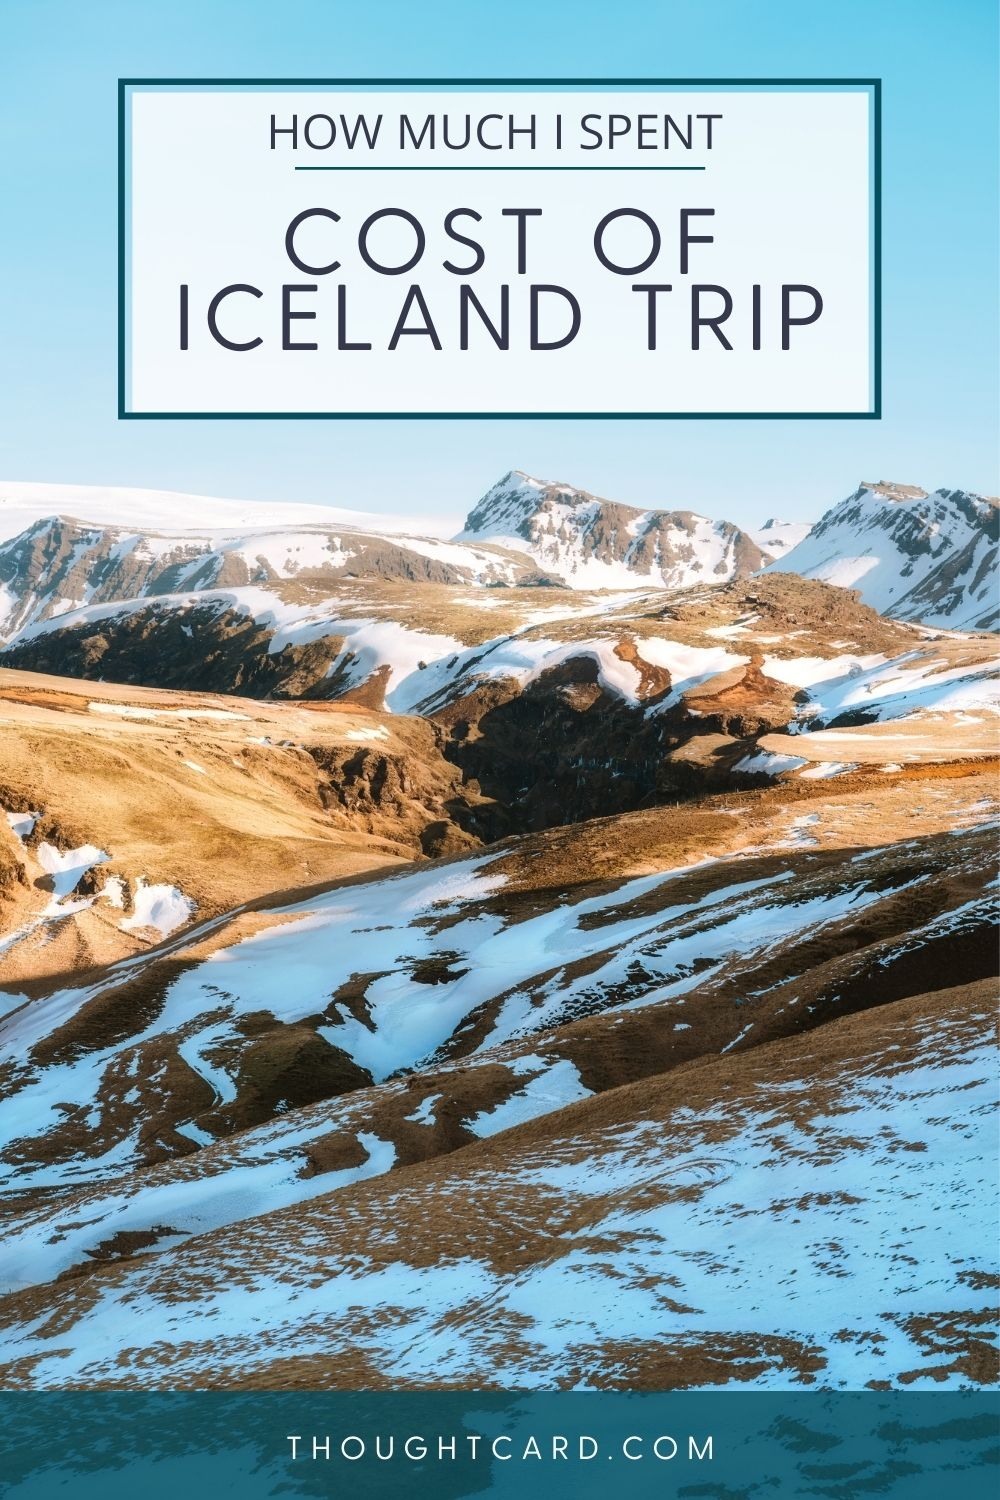 How much does it cost to go to Iceland?